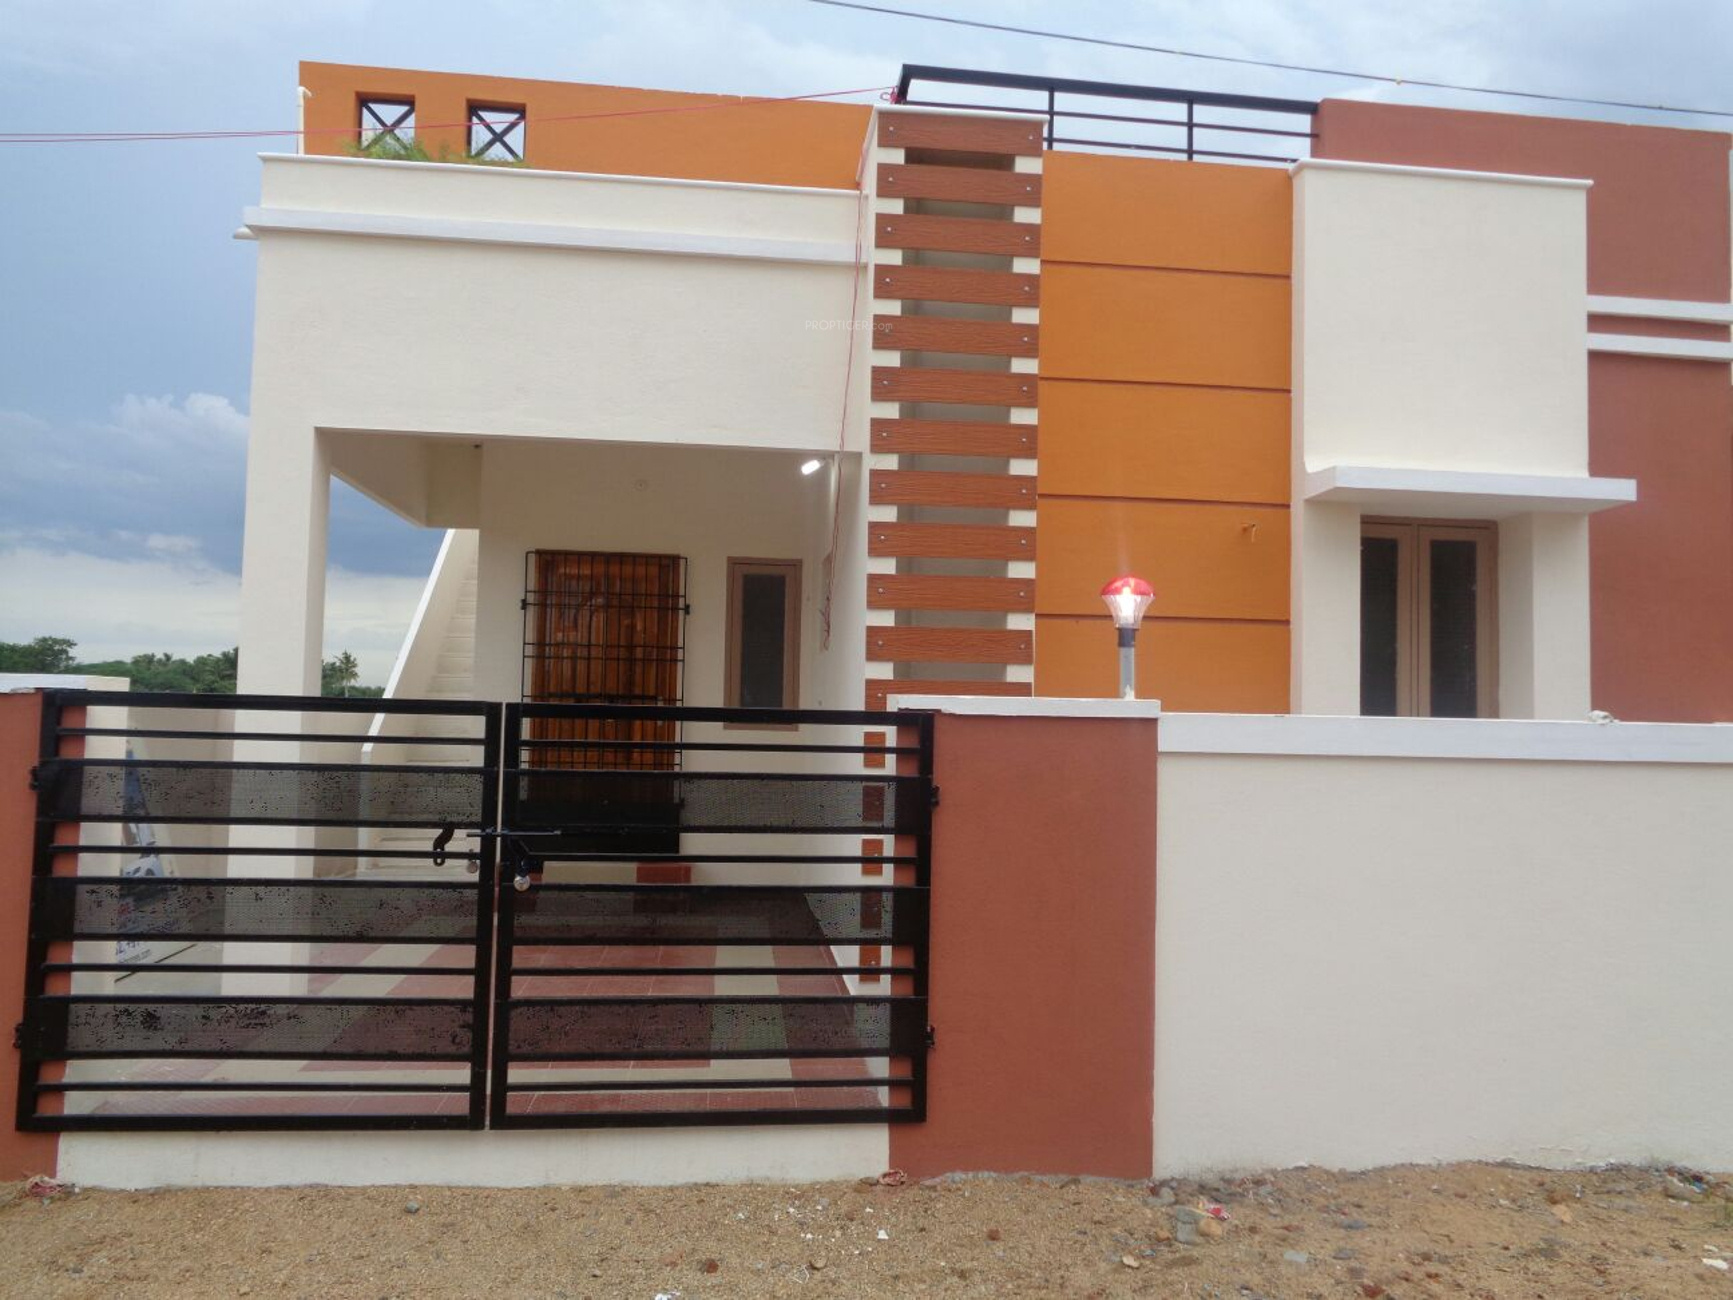 758 Sq Ft 2 Bhk 2t Villa In Sumathi Homes And Developers Metro Square